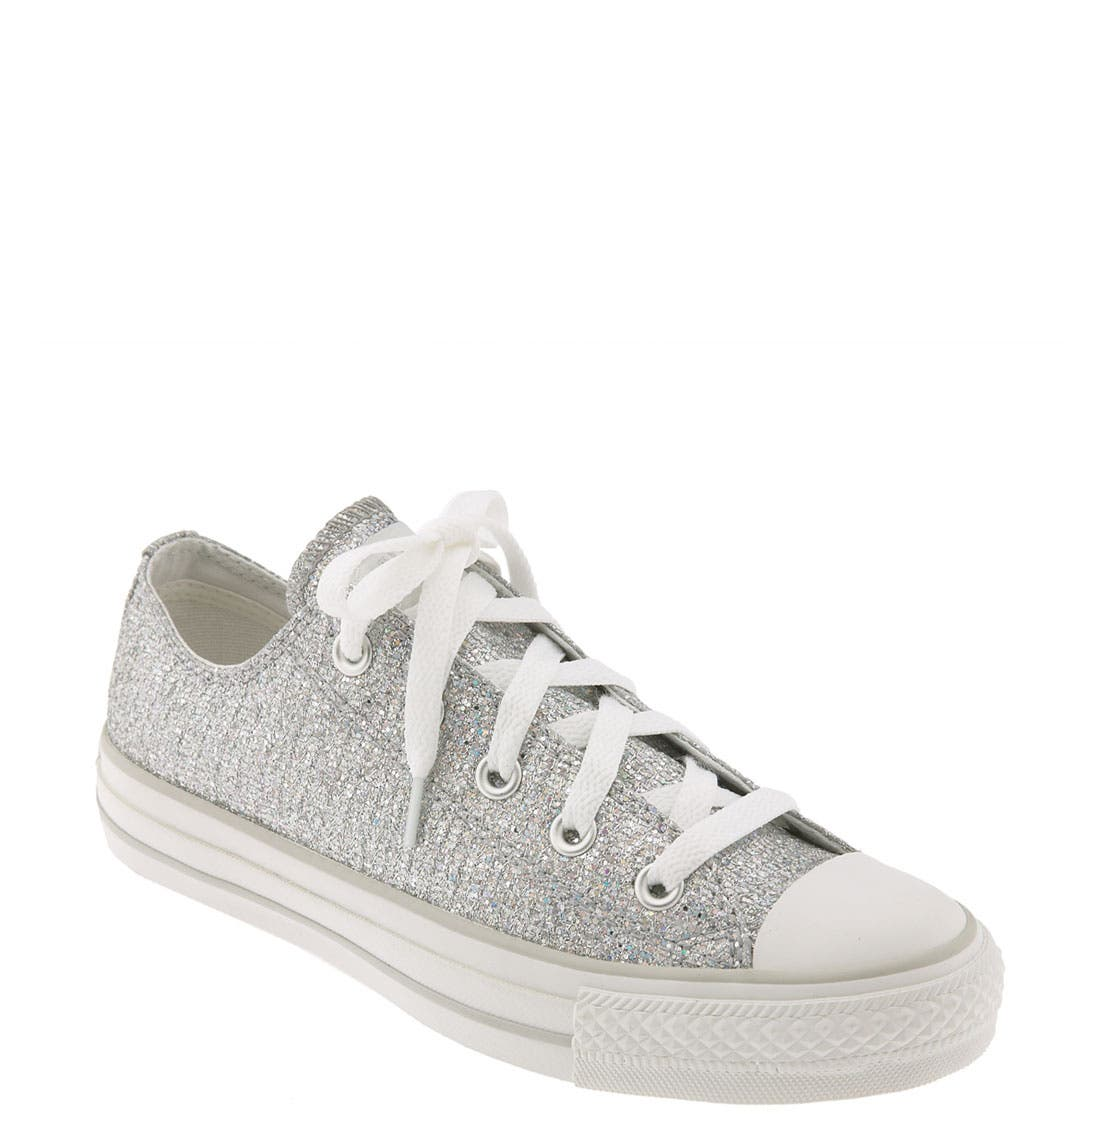 Chuck Taylor<sup>®</sup> 'Sparkle' Sneaker,                             Main thumbnail 1, color,                             047